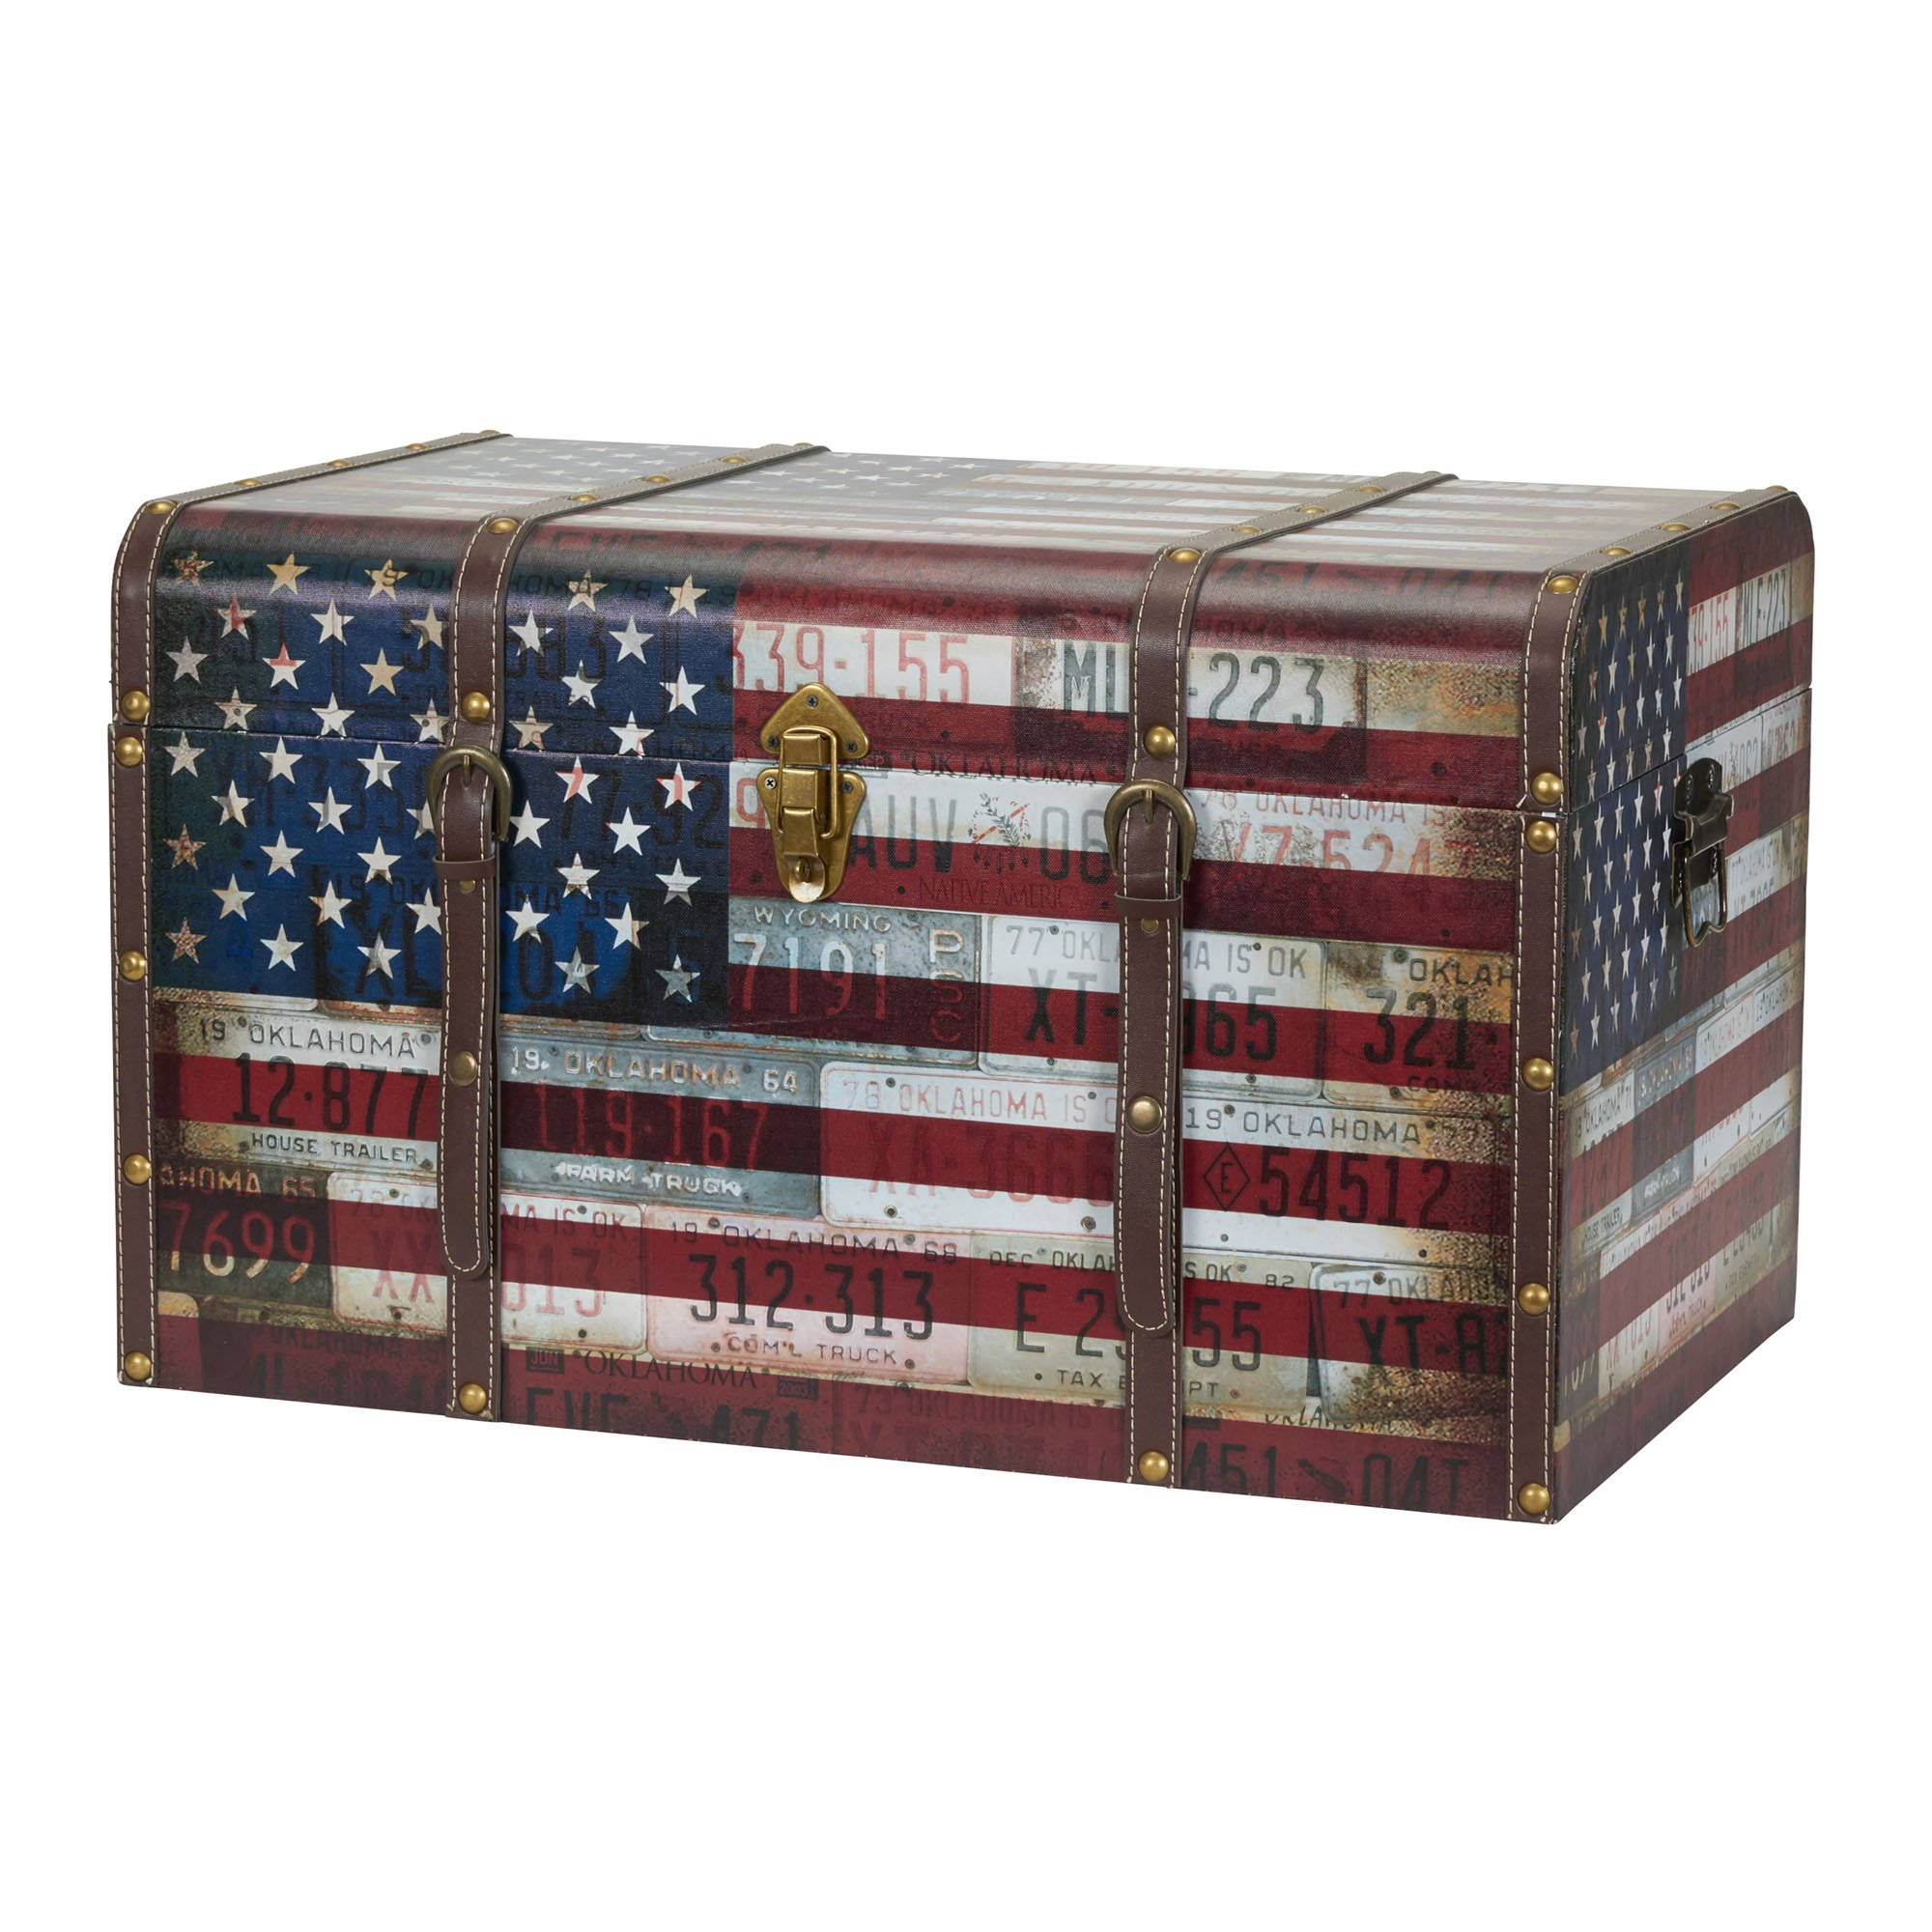 Household Essentials 9203-1 Jumbo Decorative Home Storage Trunk - Luggage Style - Americana Design by Household Essentials